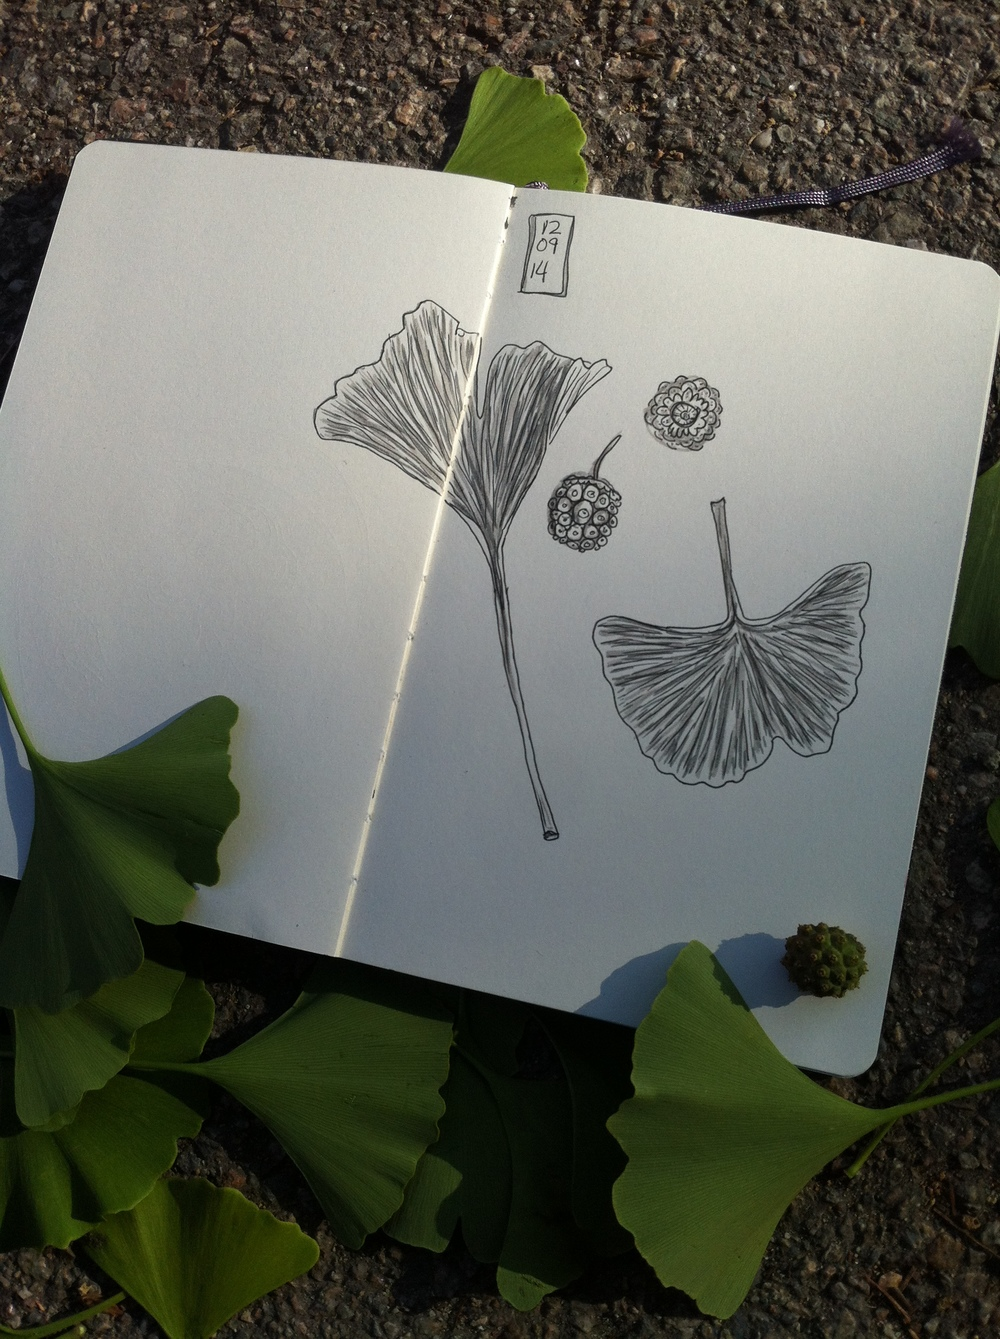 then moved on to drawing ginkgo leaves and seedpods at the school playground while my kids played